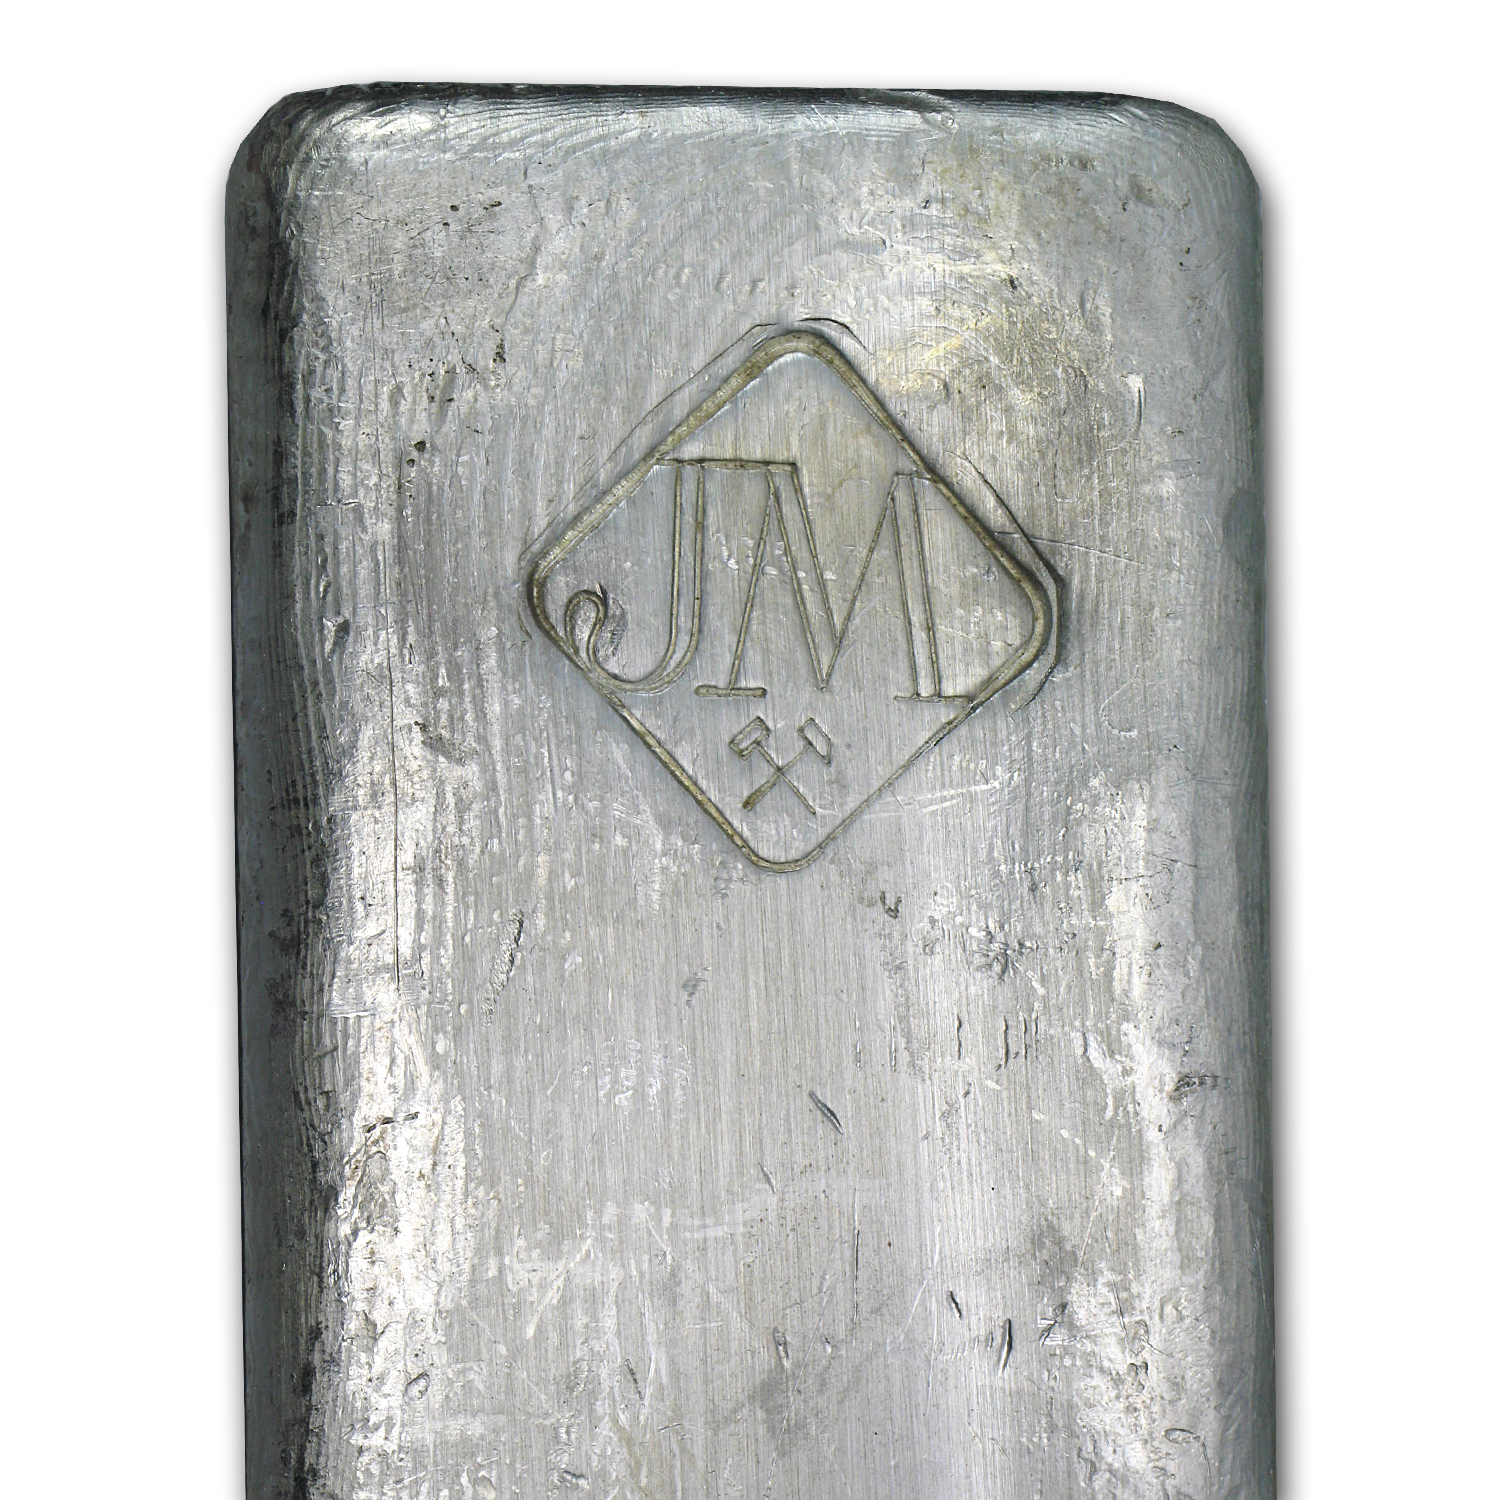 50 oz Silver Bars - Johnson Matthey (Canada/Vintage)